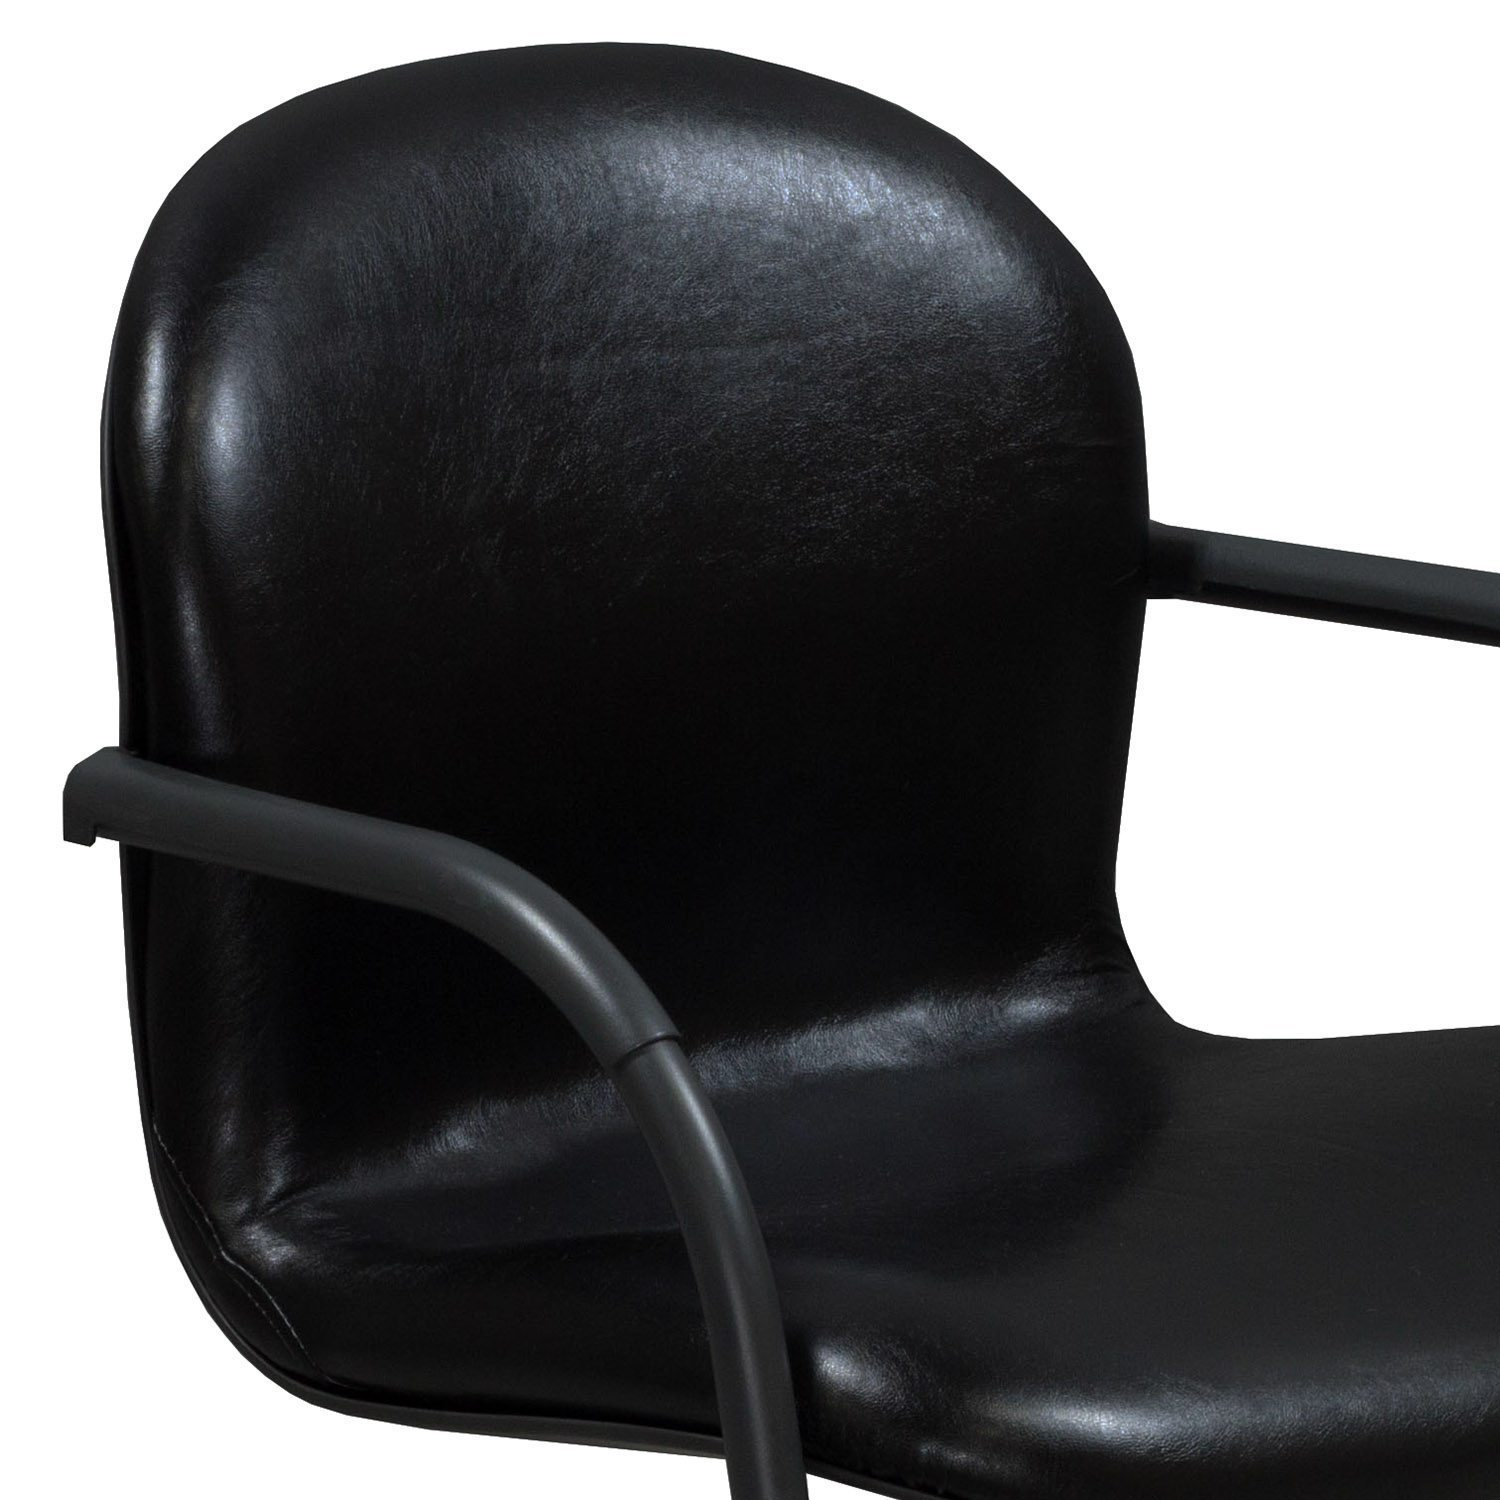 knoll rpm chair swivel definition used leather side black national office